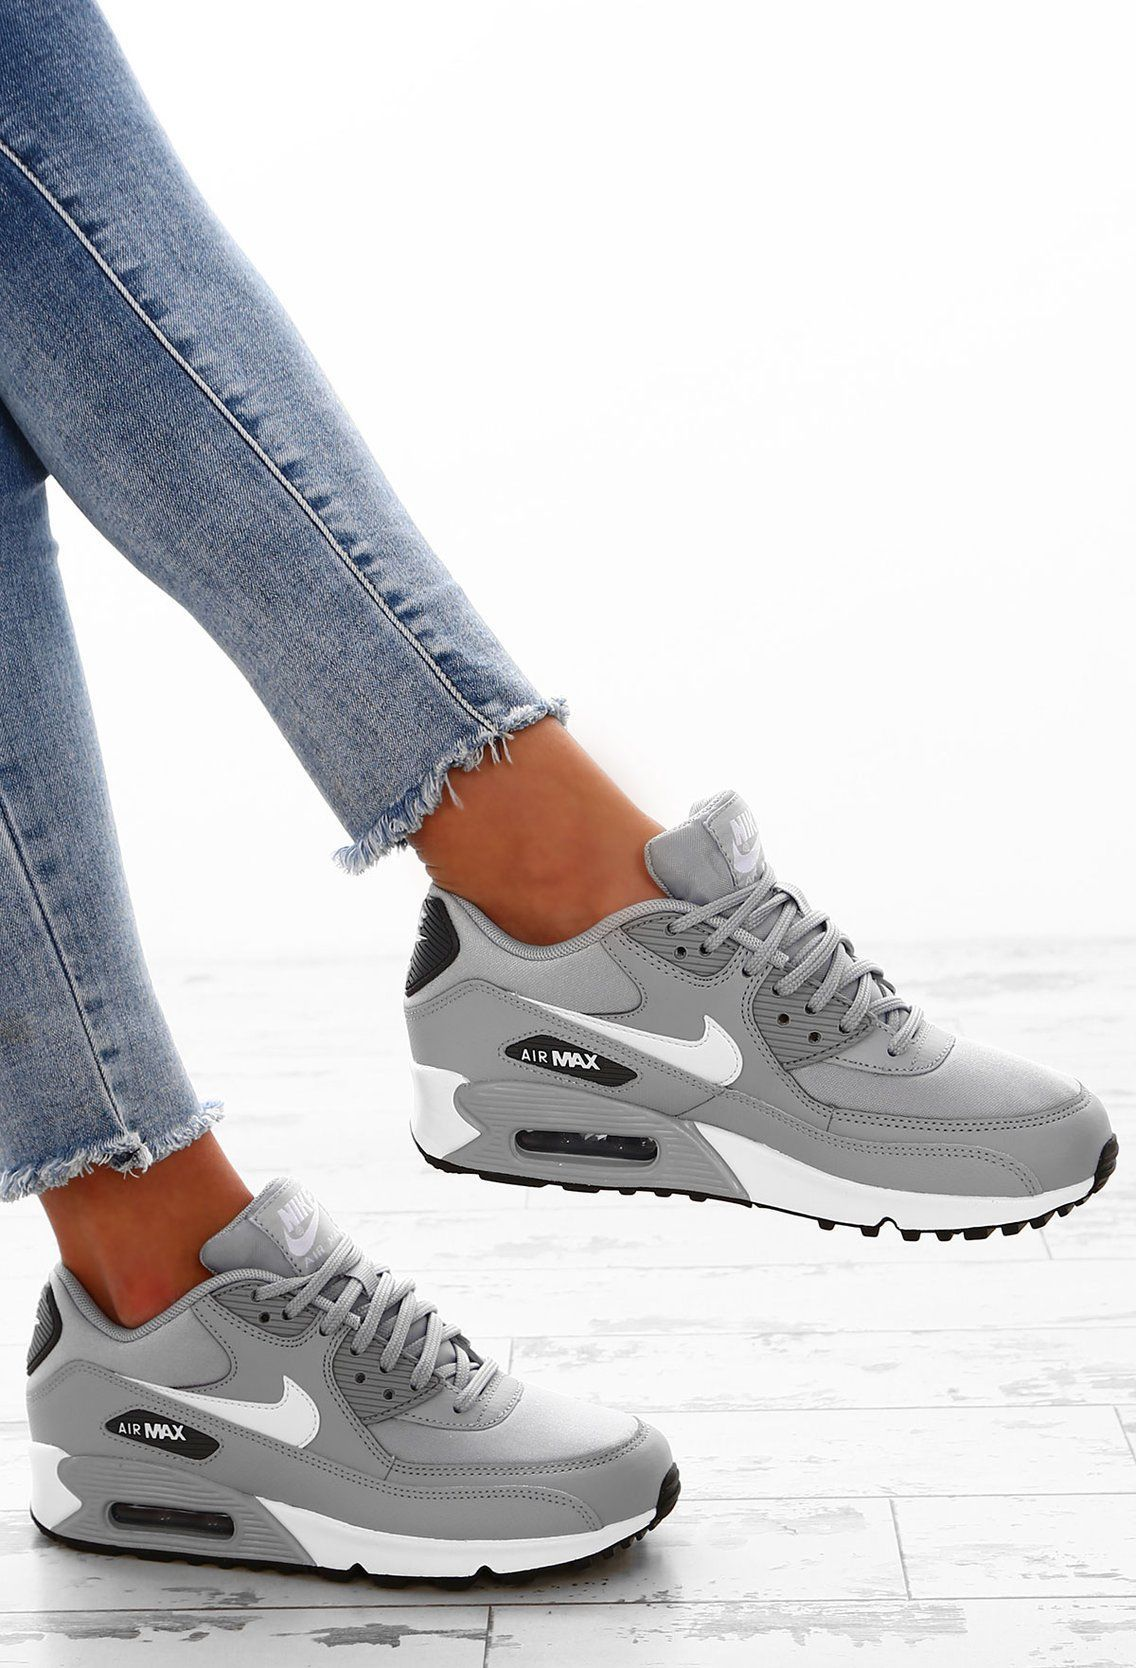 Nike Air Max 90 Grey Trainers In 2020 Gray Nike Shoes Grey Nike Trainers Air Max 90 Grey